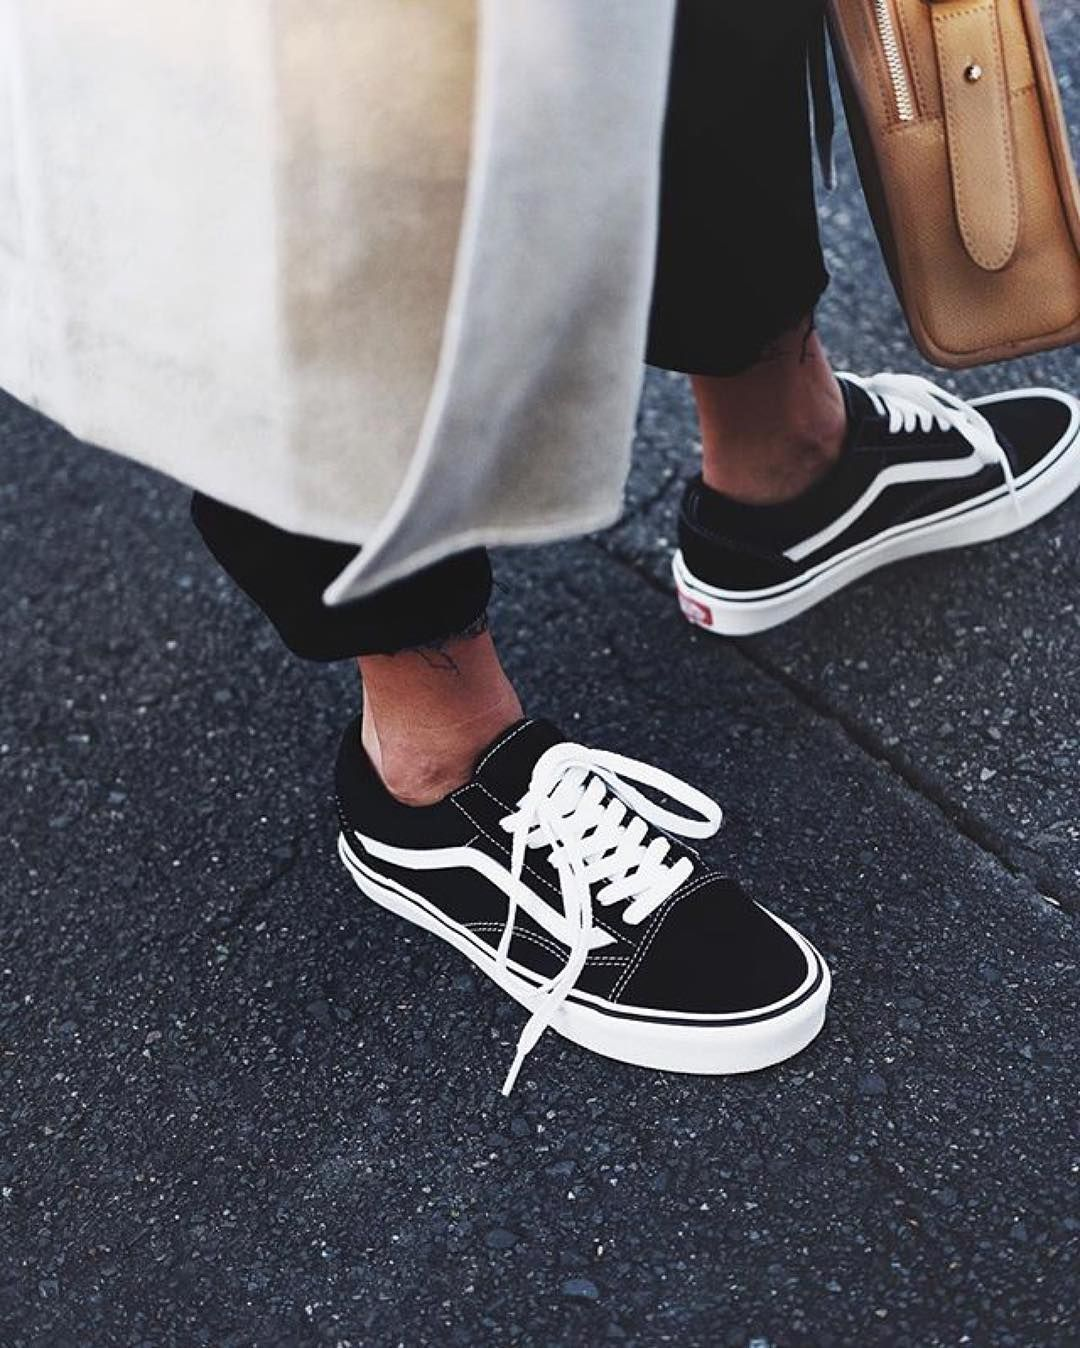 womens old skool vans black and white